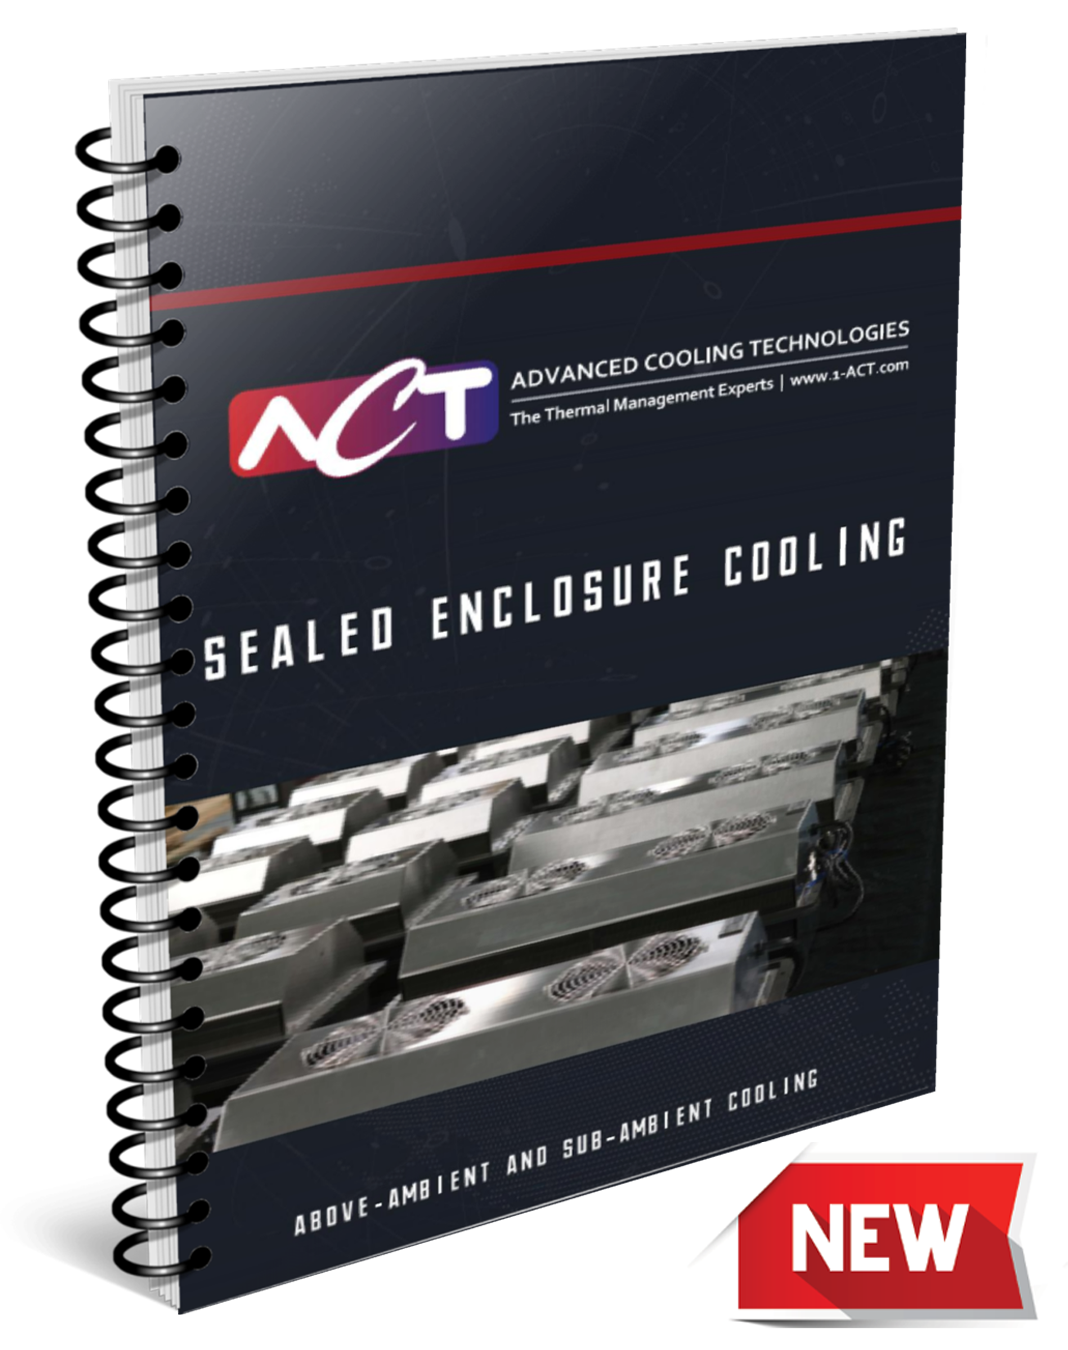 Sealed Enclosure Cooling Product Brochure